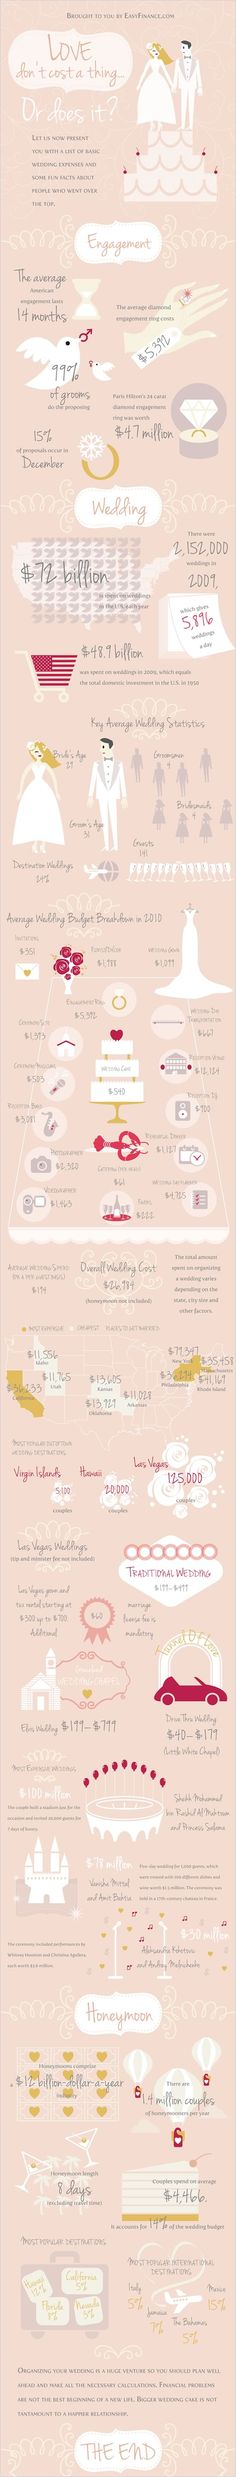 average cost of getting married...why you shouldn't spend a bajillion dollars on just flowers when there are so many other costs in my mind but hey to each their own. I'd personally rather have a super nice dress, spend enough on the wedding that people say they had fun, and go on a nice honeymoon. No need to spend your life's savings before you even have any lol